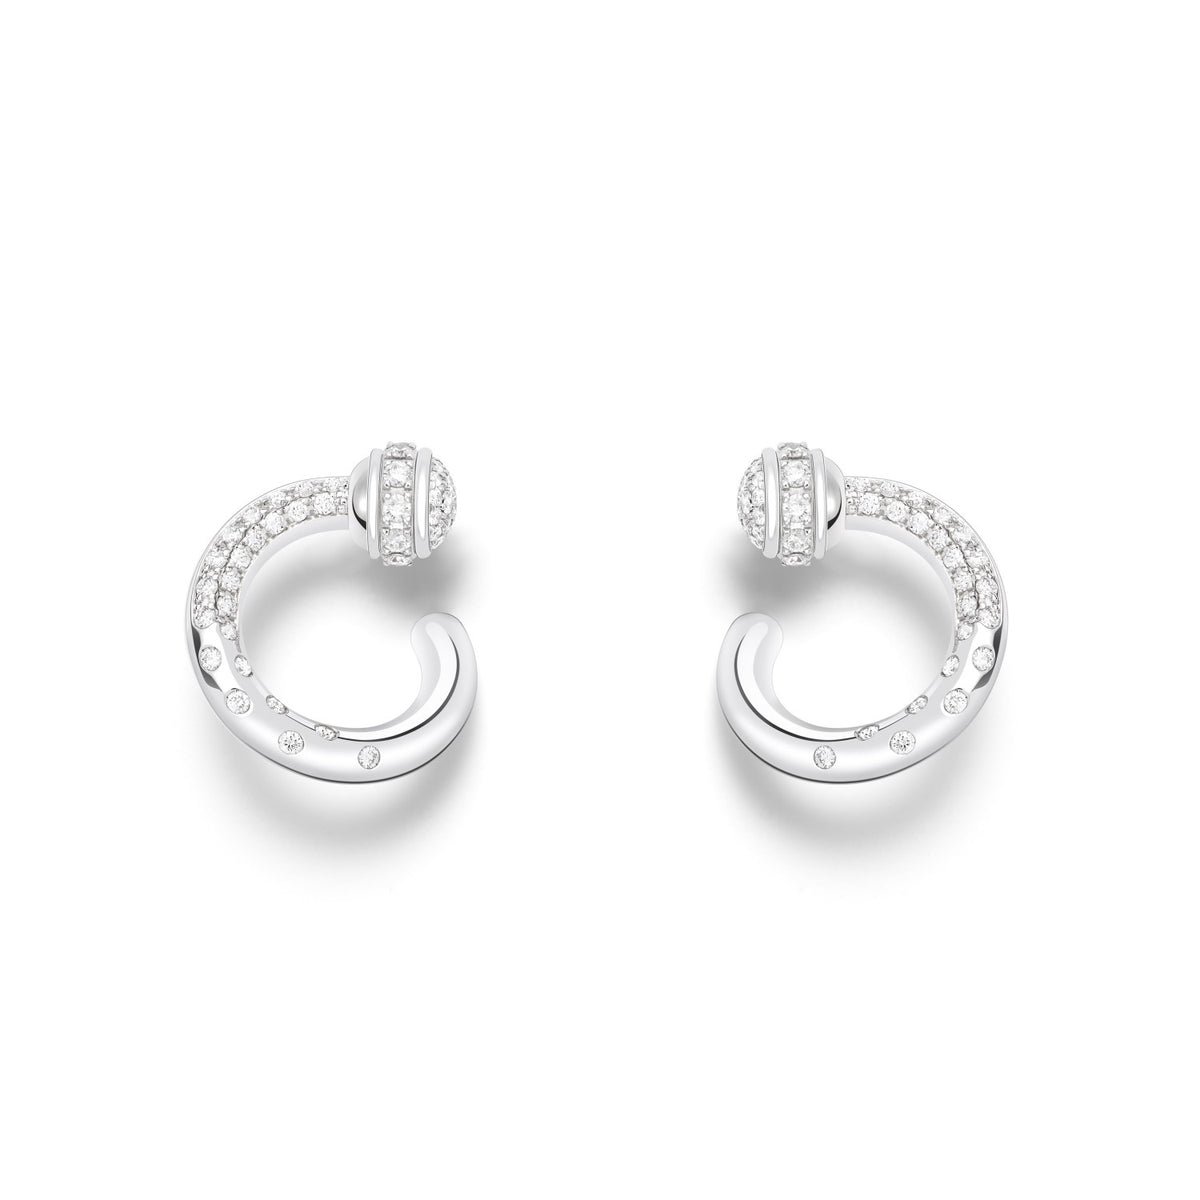 Possession open hoop earrings in 18K white gold set with 104 brilliant-cut diamonds (approx. 0.57 ct).